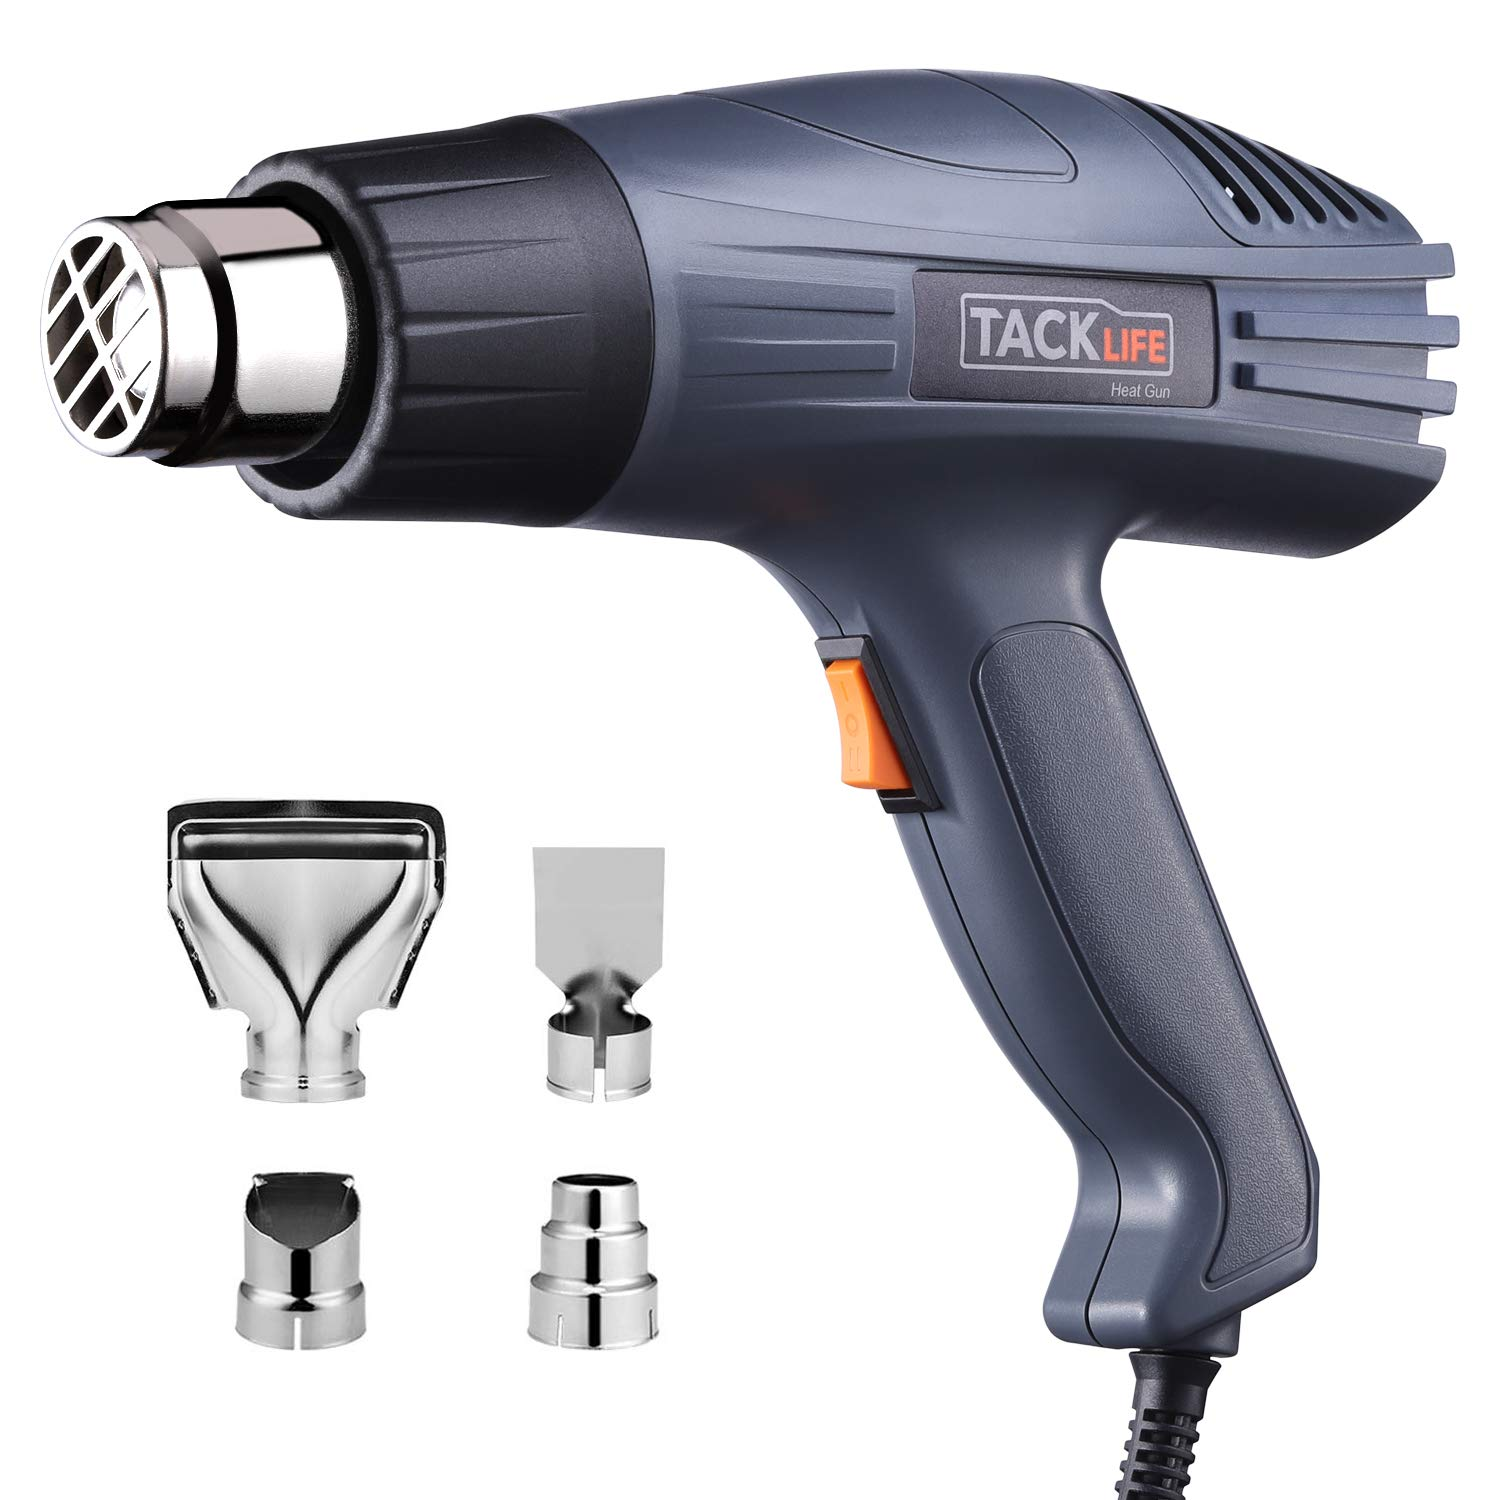 TACKLIFE Heat Gun 1500W 572℉~ 932℉ Dual Temperature Heat Gun Kit with Four Metal Nozzle Attachments for Thawing Pipes, Stripping Paint, Loosening Floor Tiles-HGP69AC by TACKLIFE